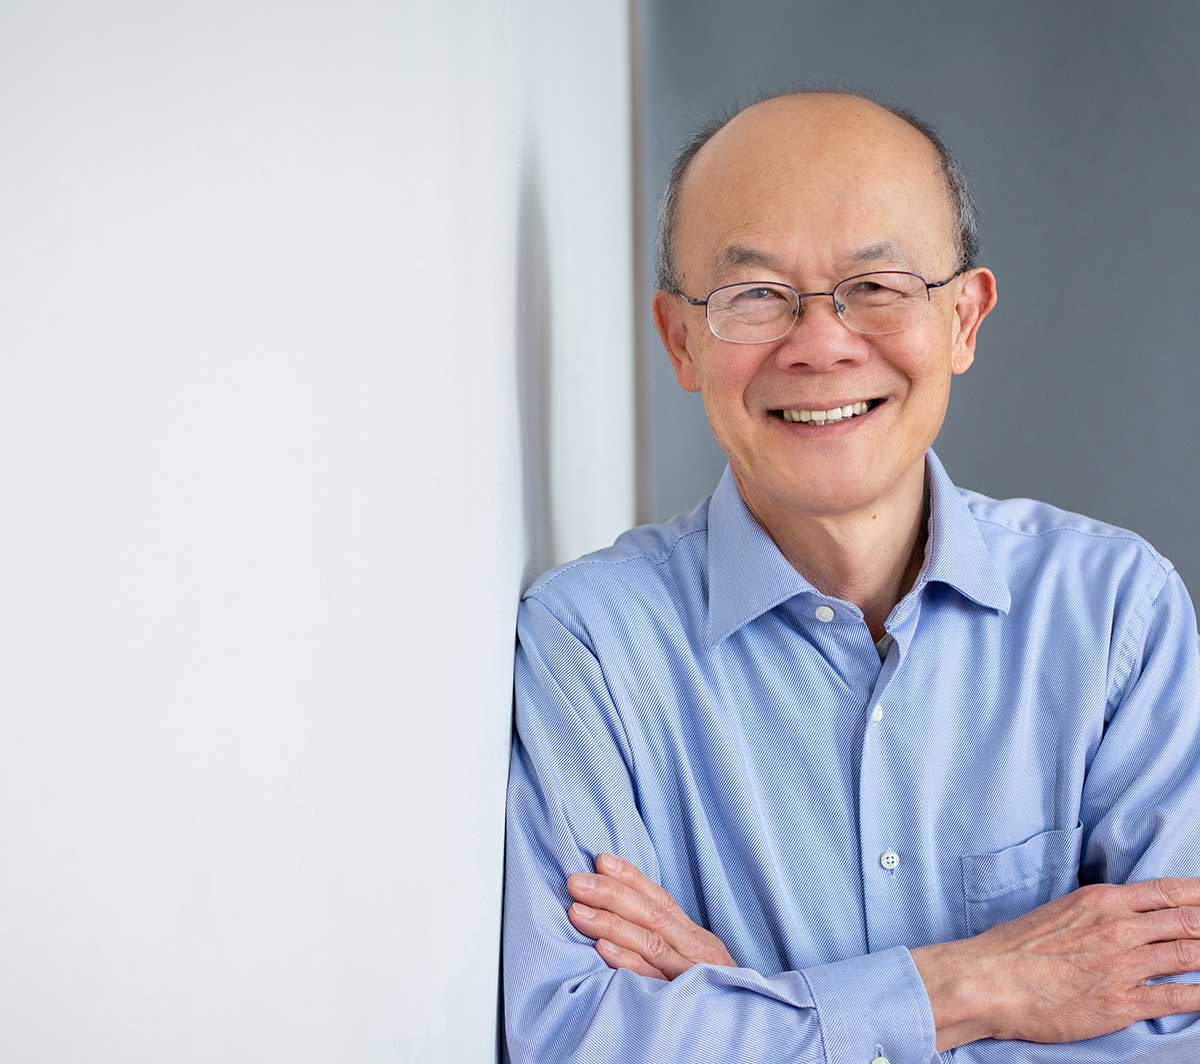 A photograph of a man named, Dr. Barrie Tan